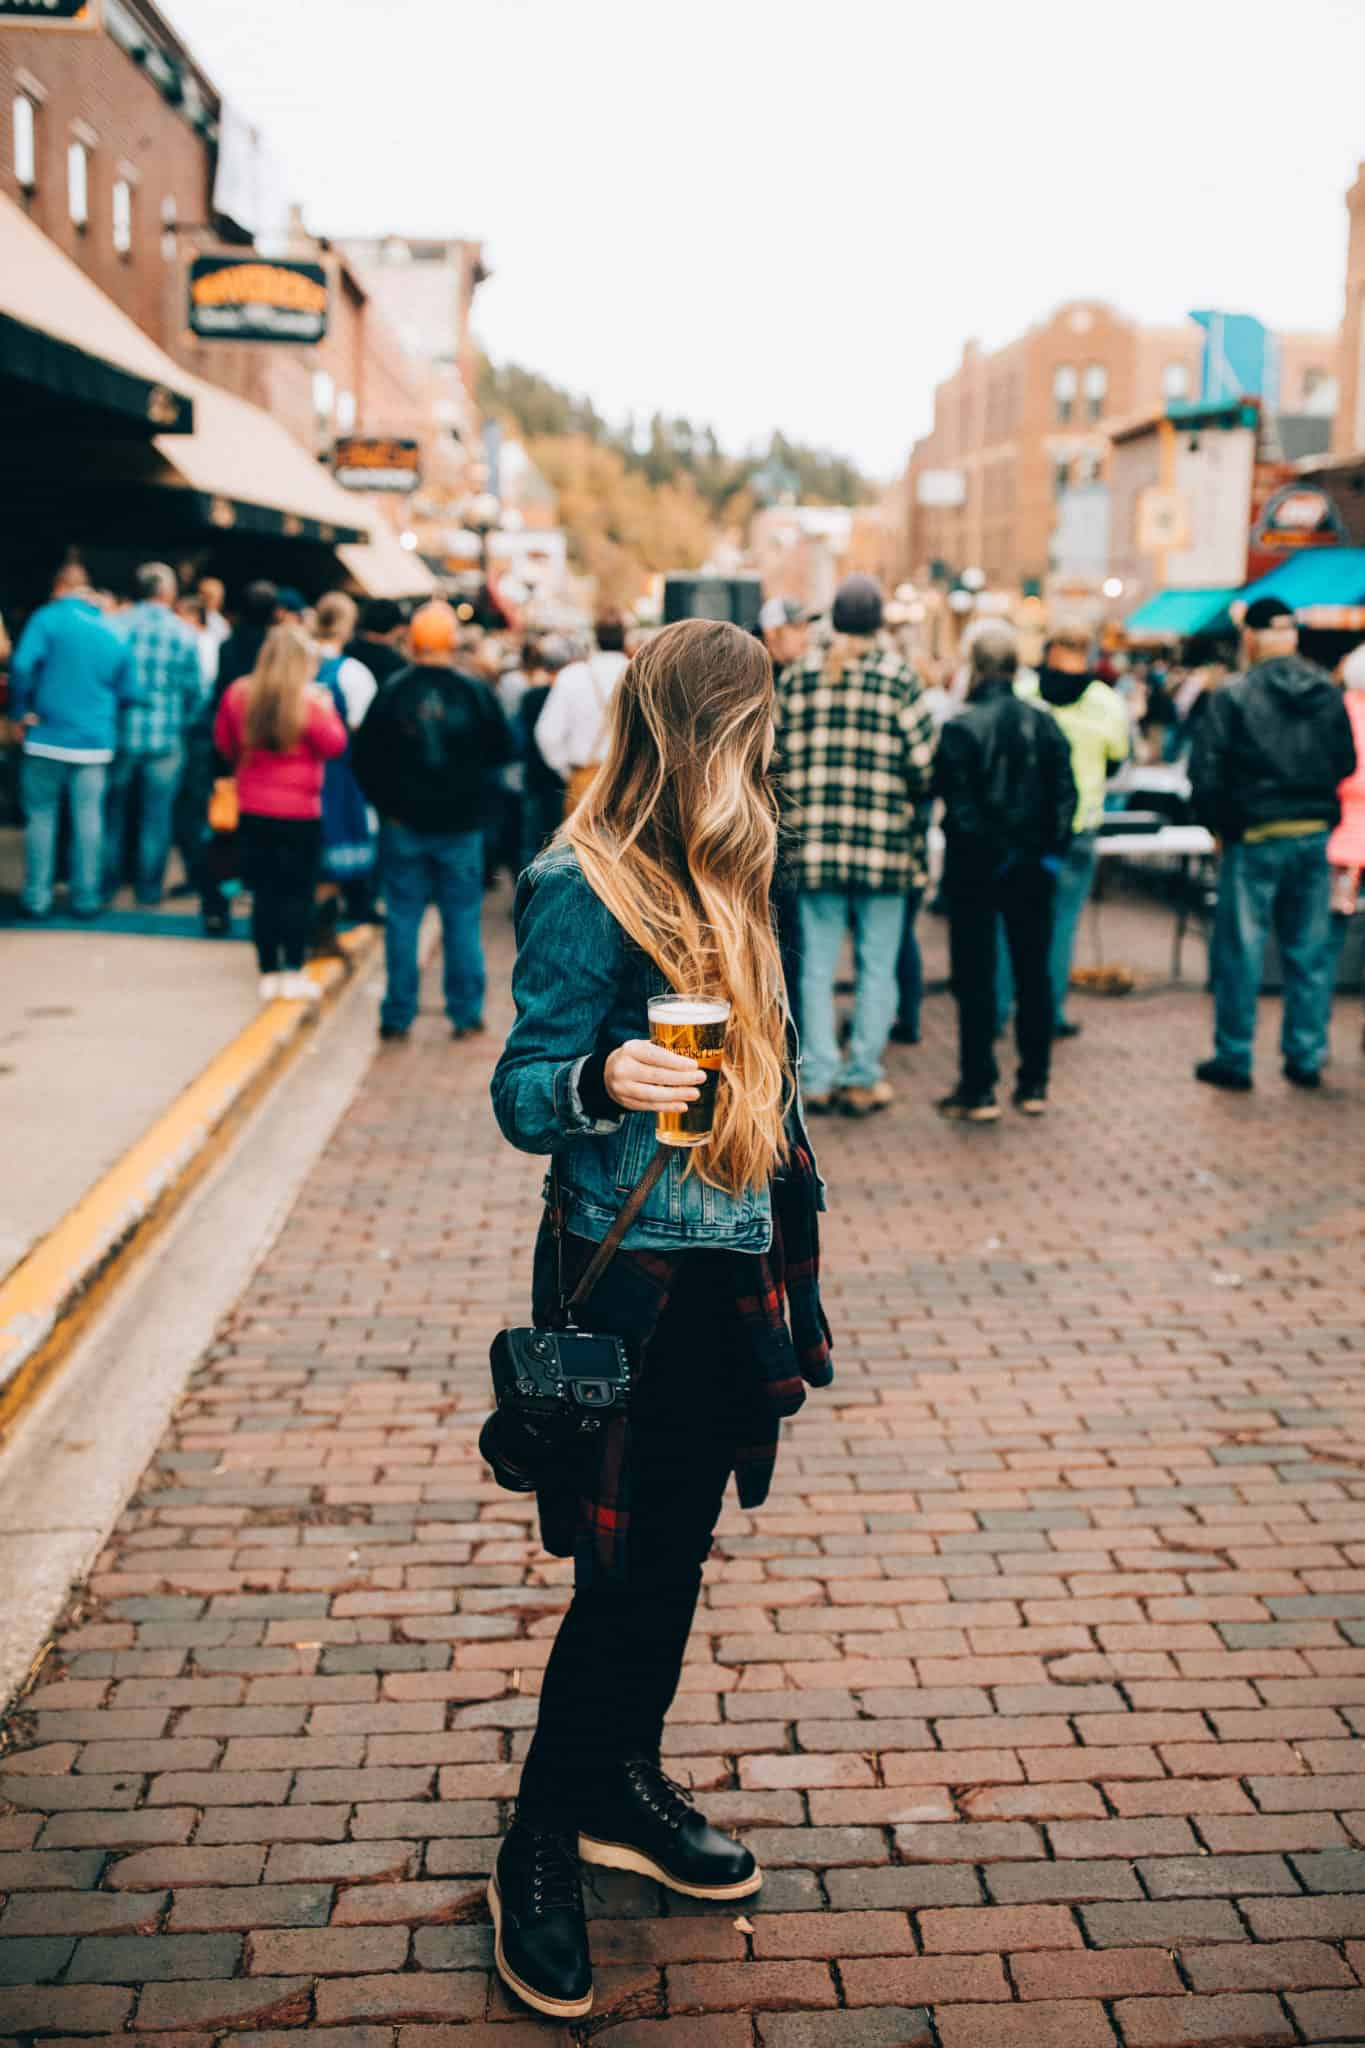 Emily, autumn in South Dakota, Oktoberfest in Deadwood